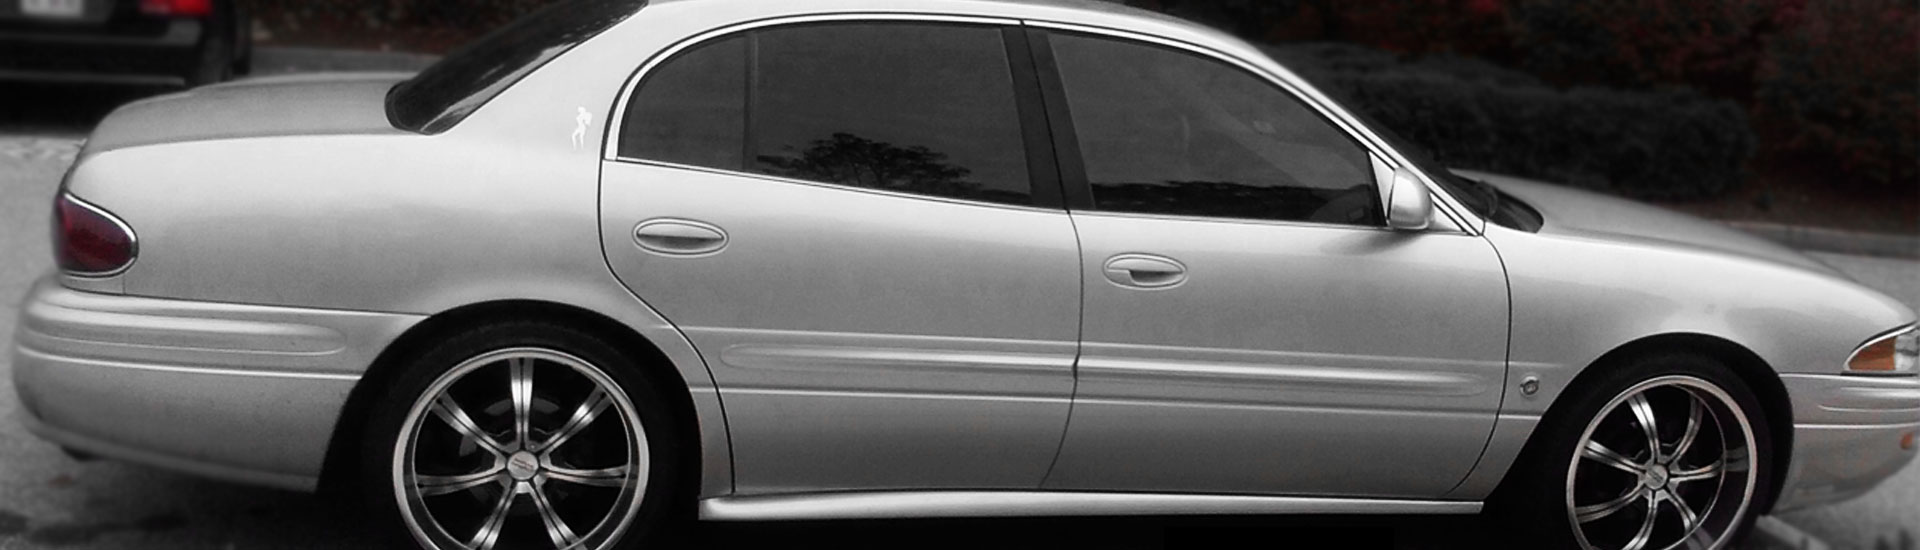 hight resolution of buick lesabre window tint